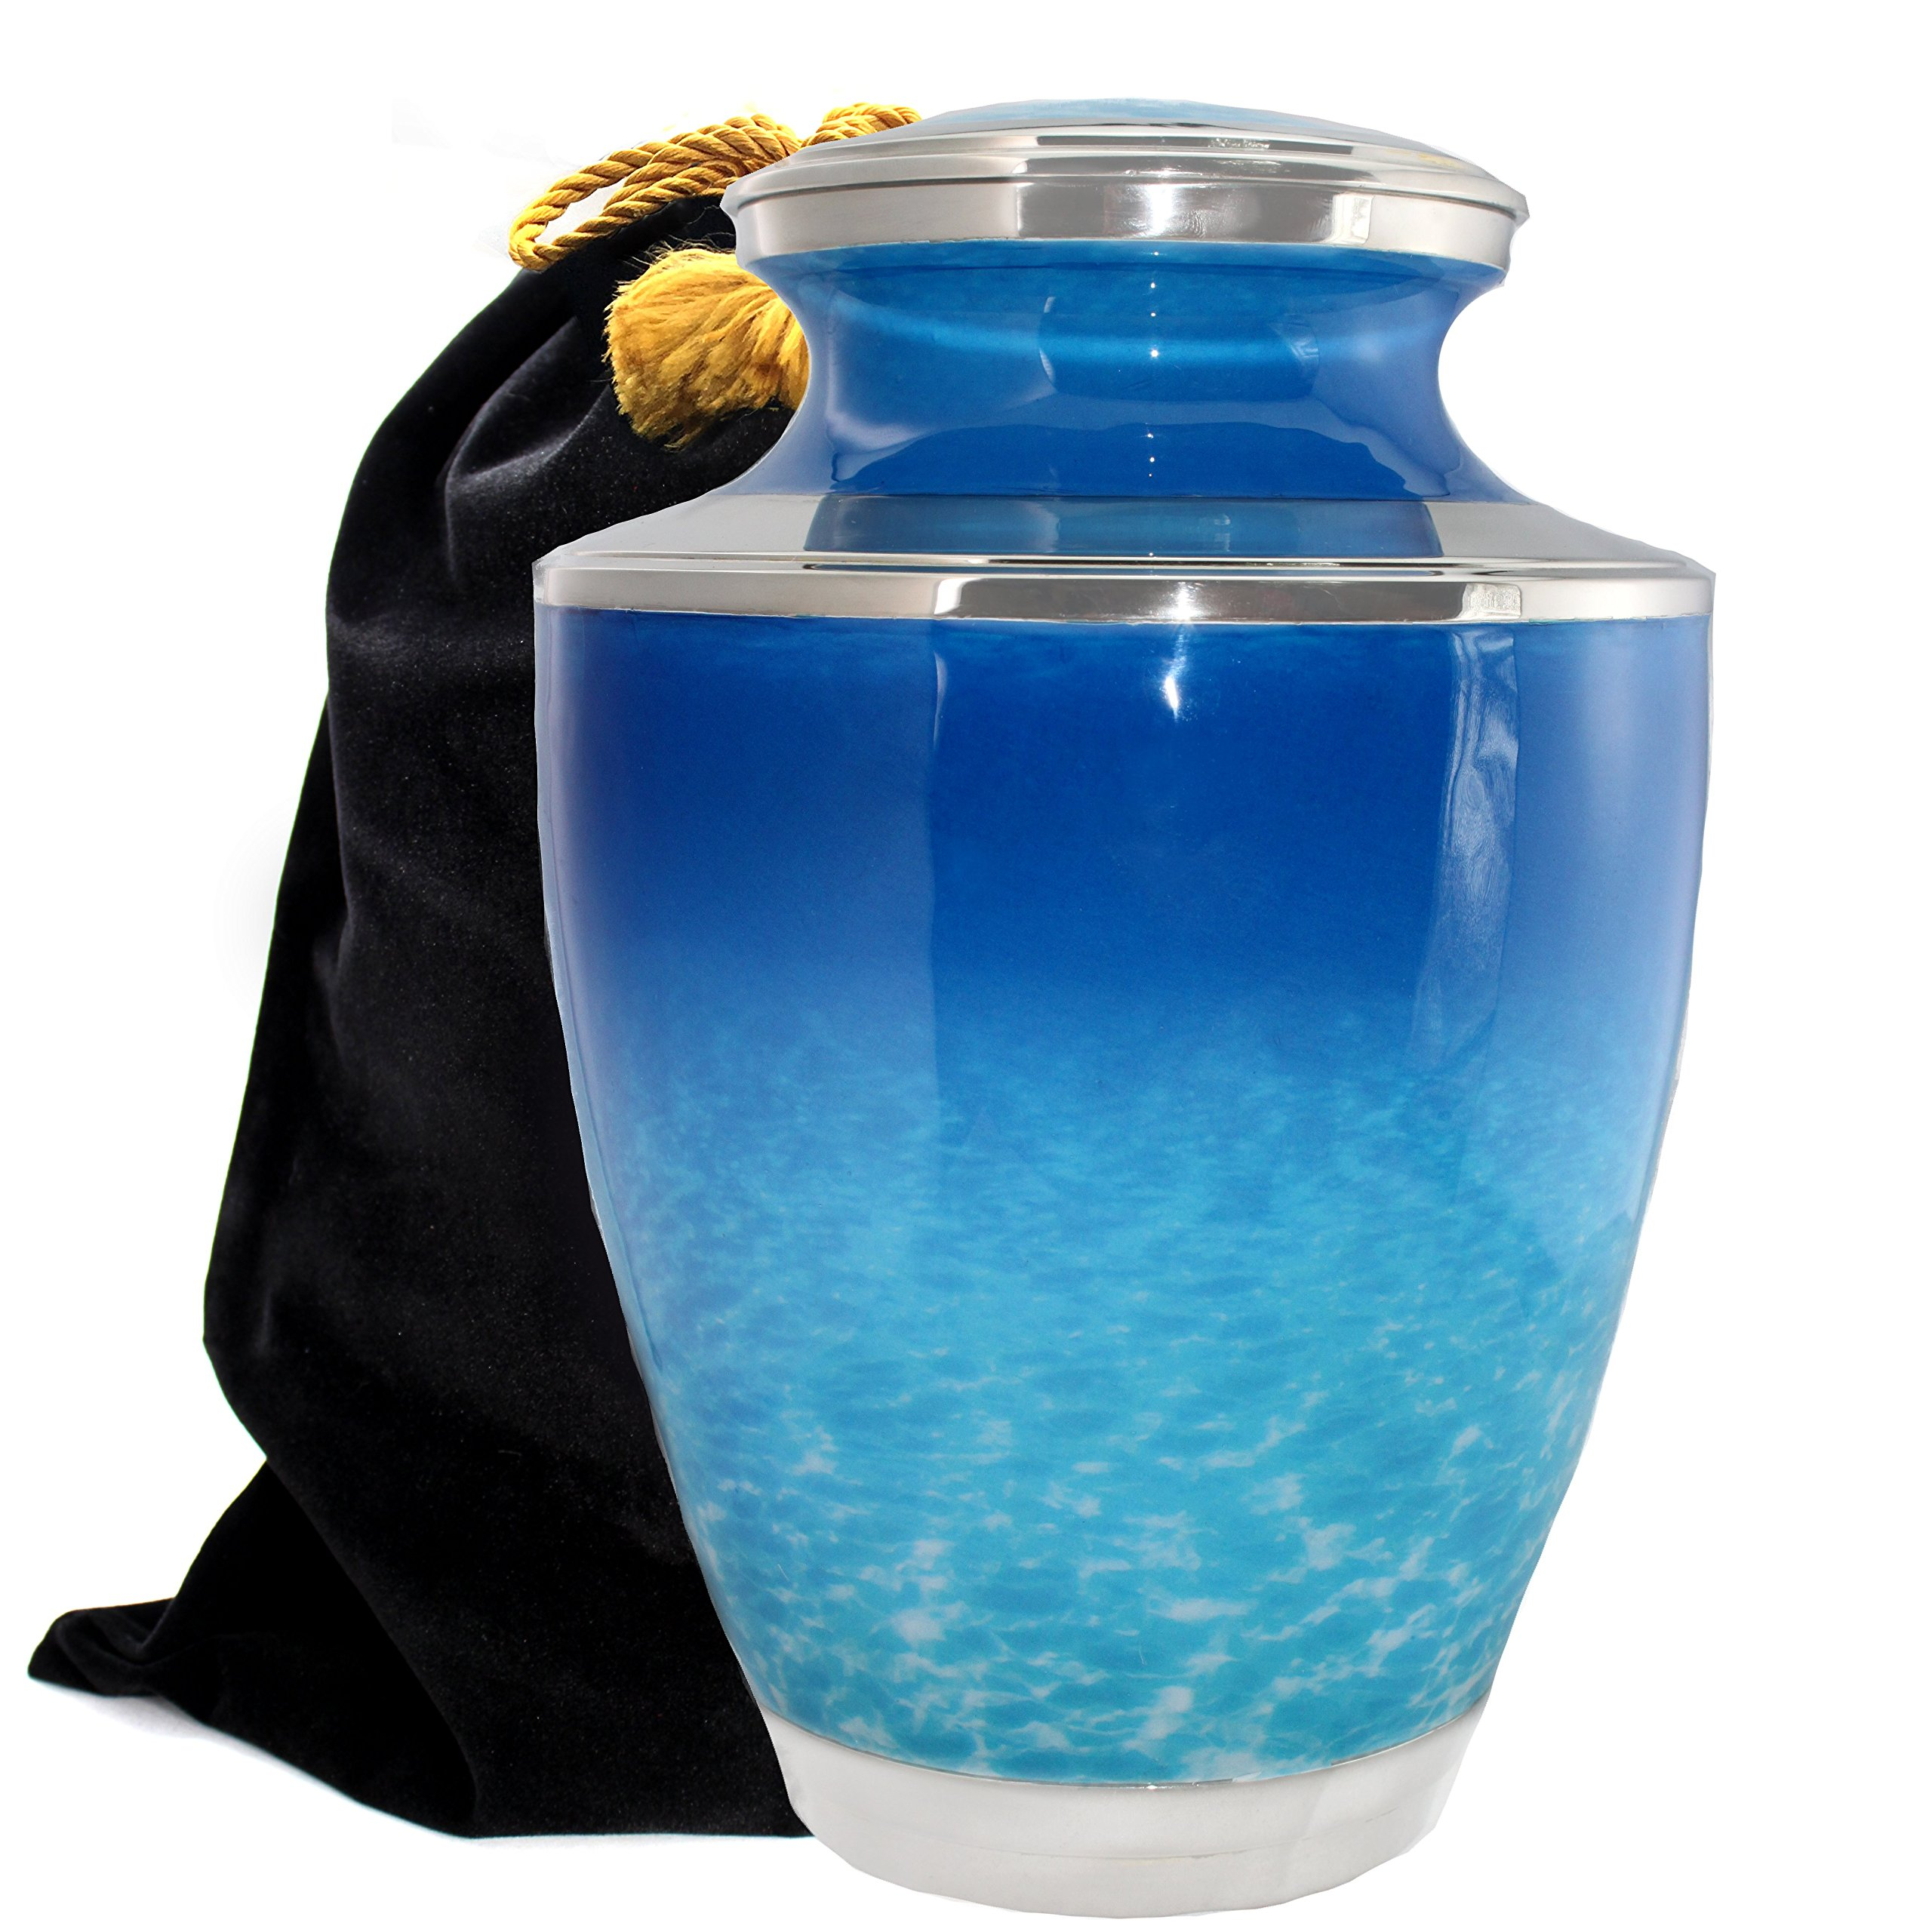 Ocean Tranquility - Cremation Urn for Human Ashes - Ideal for Funeral, Burial, Columbarium or Home - Adult/Large, Small Keepsake and Set of 4 (Ocean Tranquility, Large)